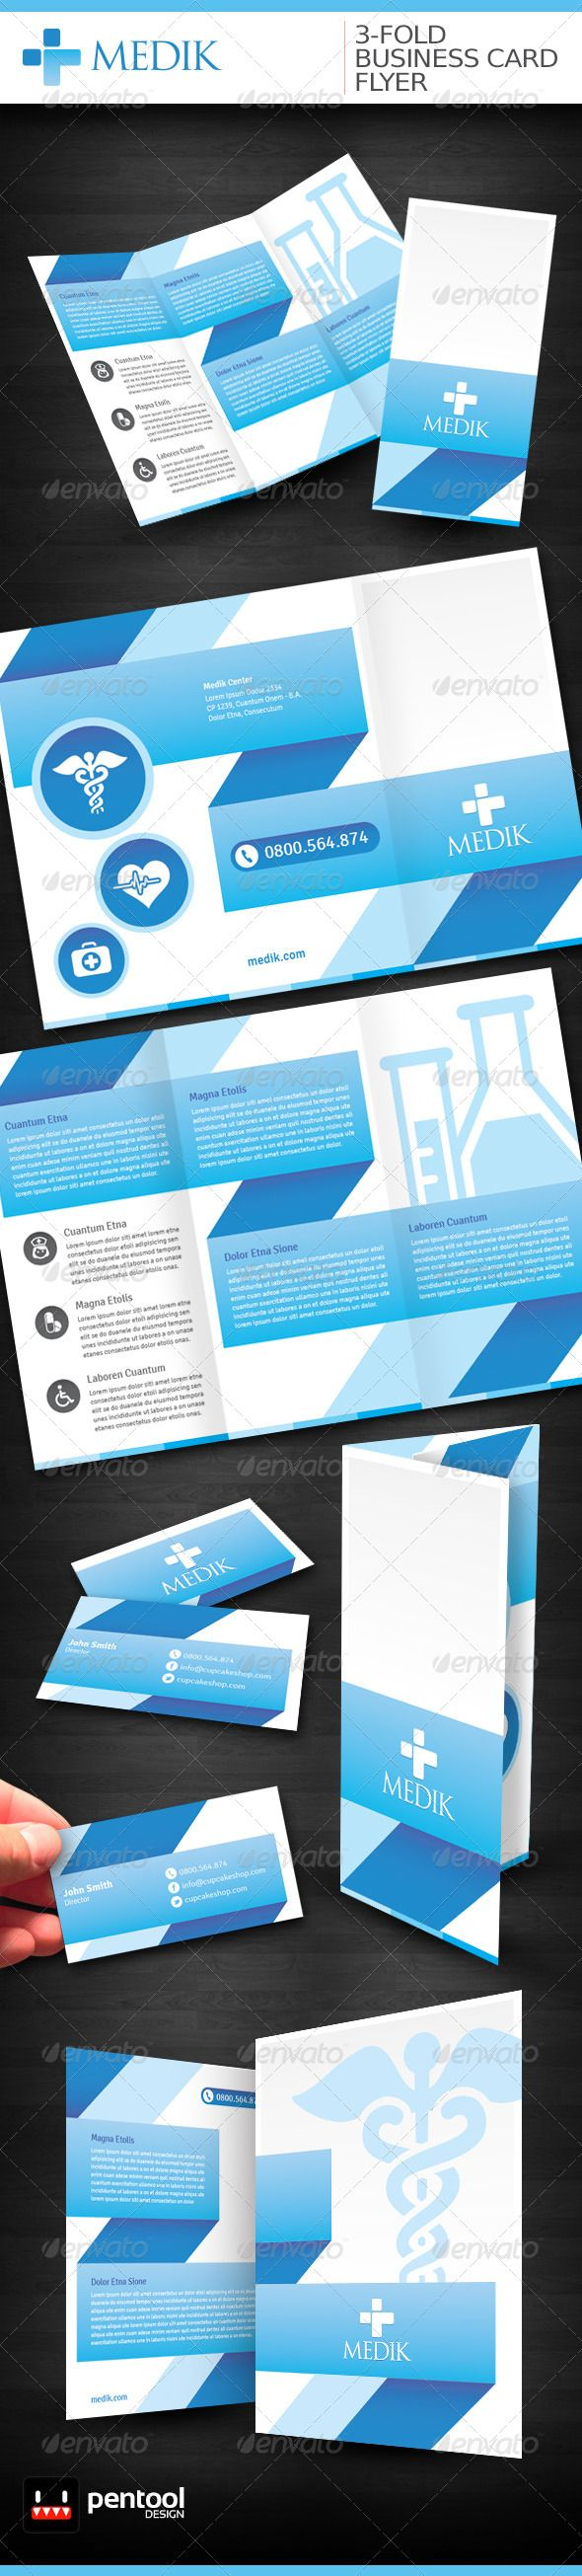 Best Folded Business Cards Ideas On Pinterest Business Card - Tri fold business card template